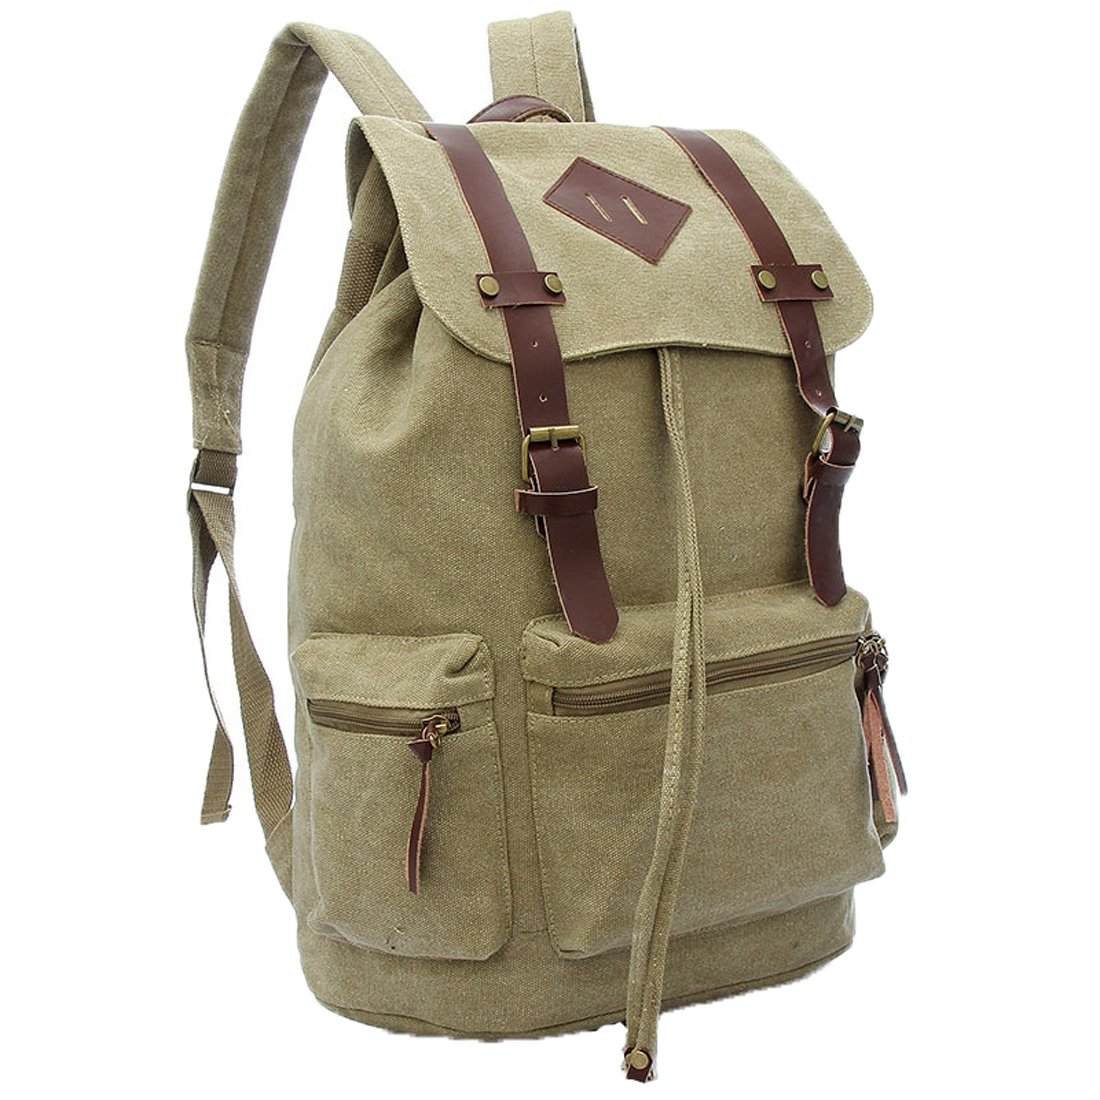 Cgecko C-1082 Leisure Retro Cotton Canvas Bagpack Backpack College School Bag For Boys by OSOPOLA